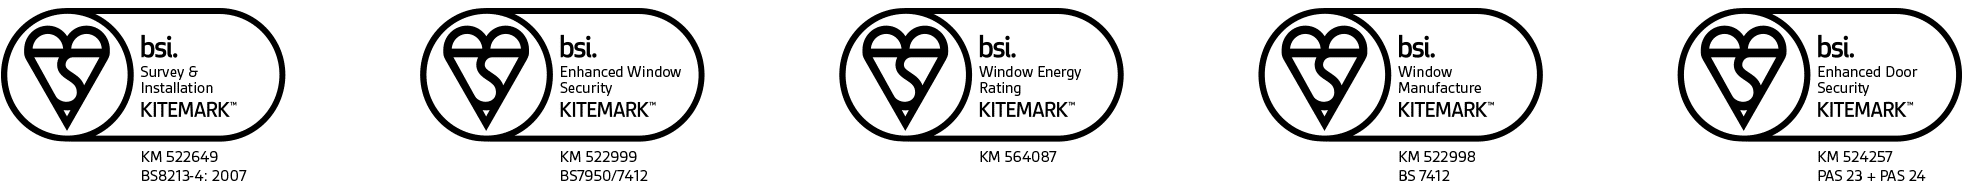 Quality guaranteed through BSi Kitemarks